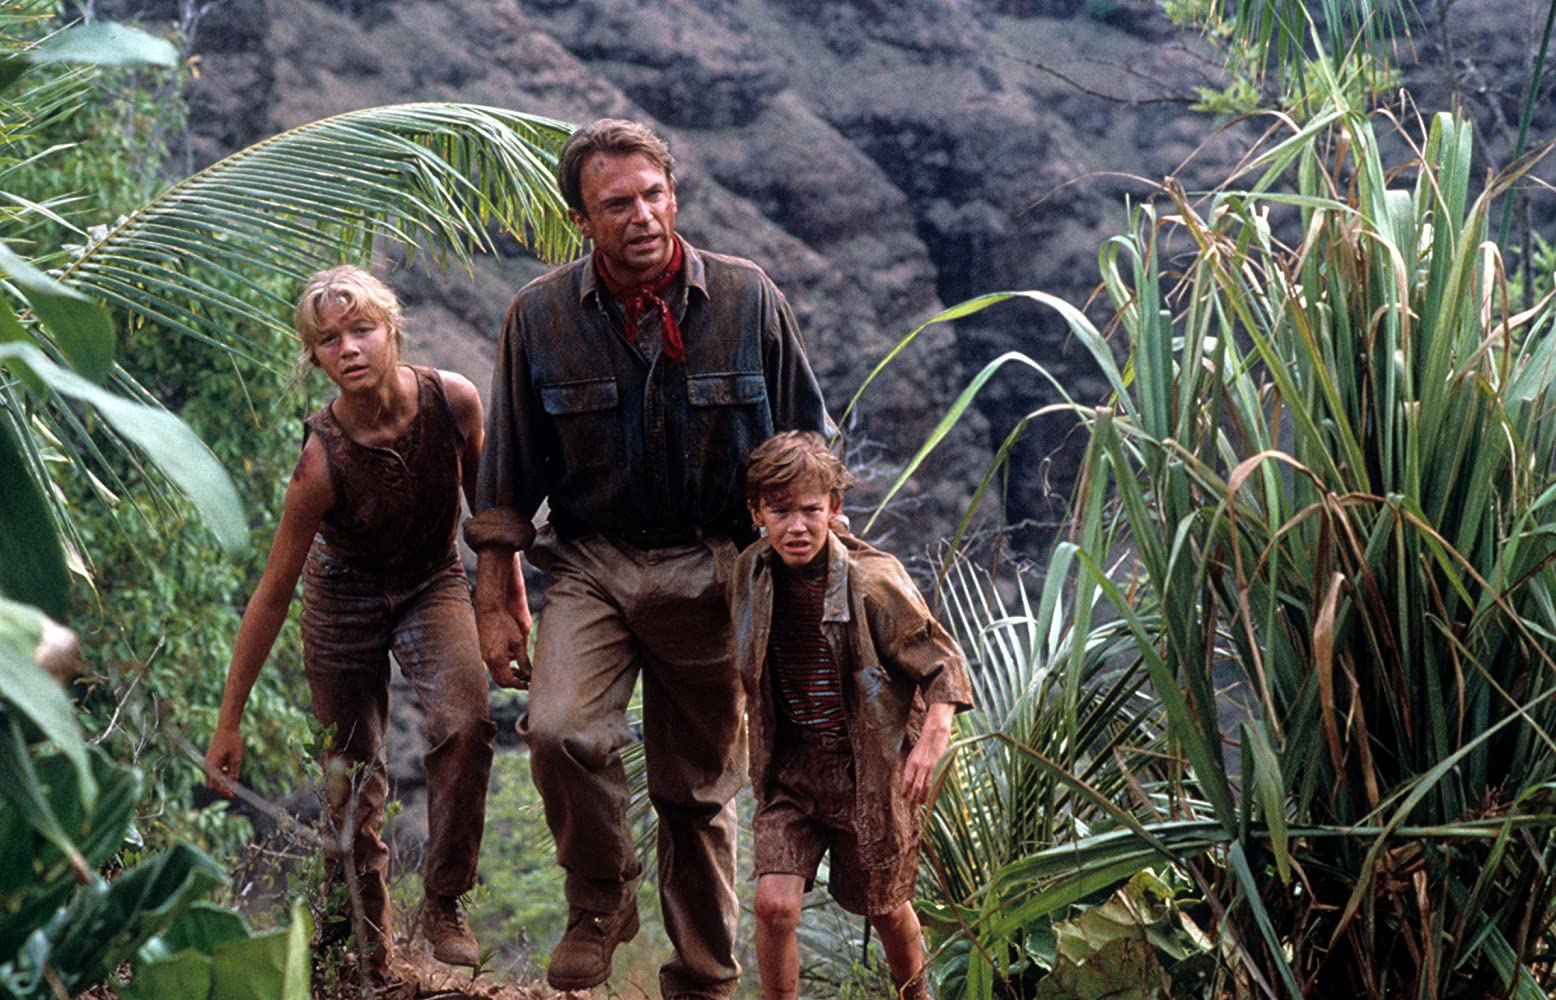 Sam Neill, Ariana Richards, and Joseph Mazzello in Jurassic Park (1993)